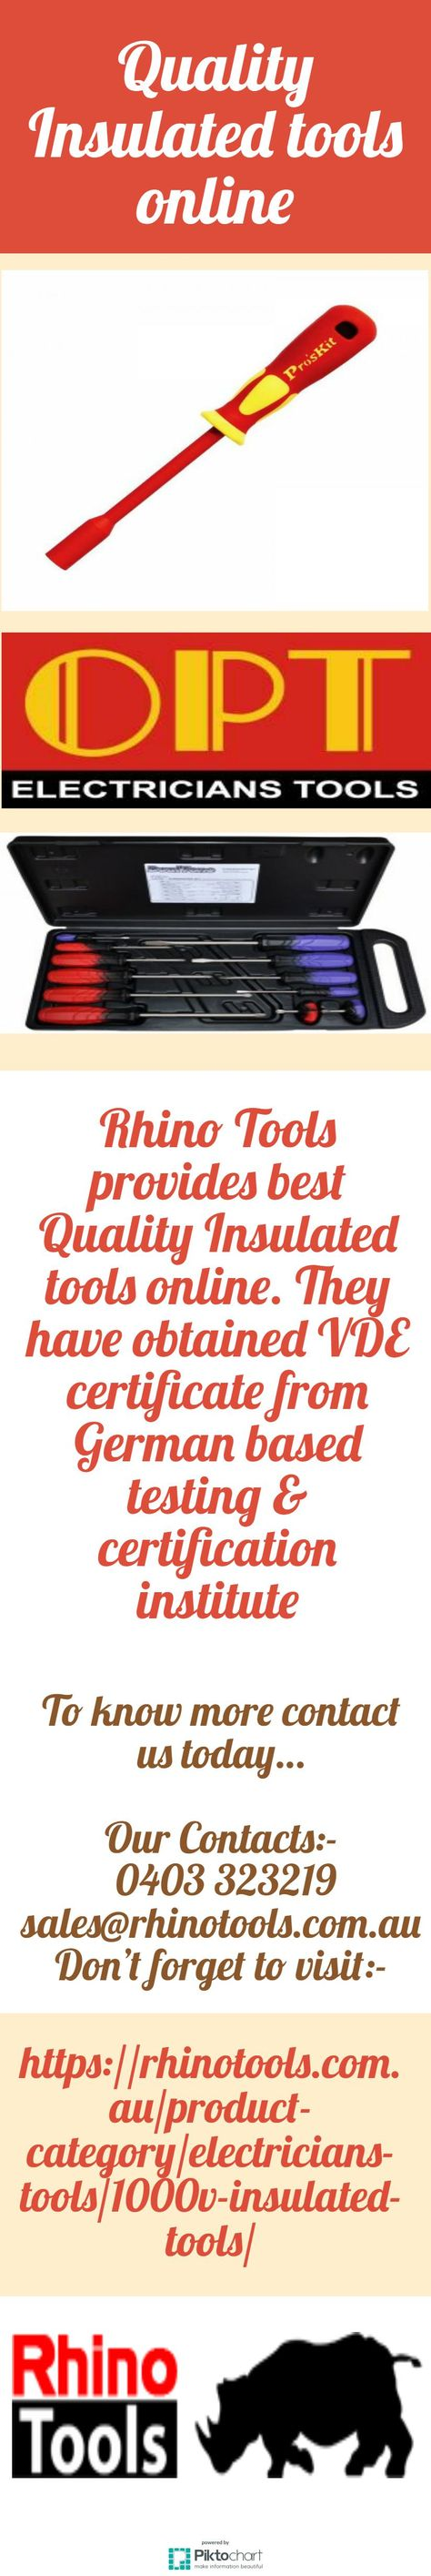 Want to get the insulated electricians tools with high quality want to get the insulated electricians tools with high quality then here we will have the largest variety of the insulated electricians tools with xflitez Choice Image